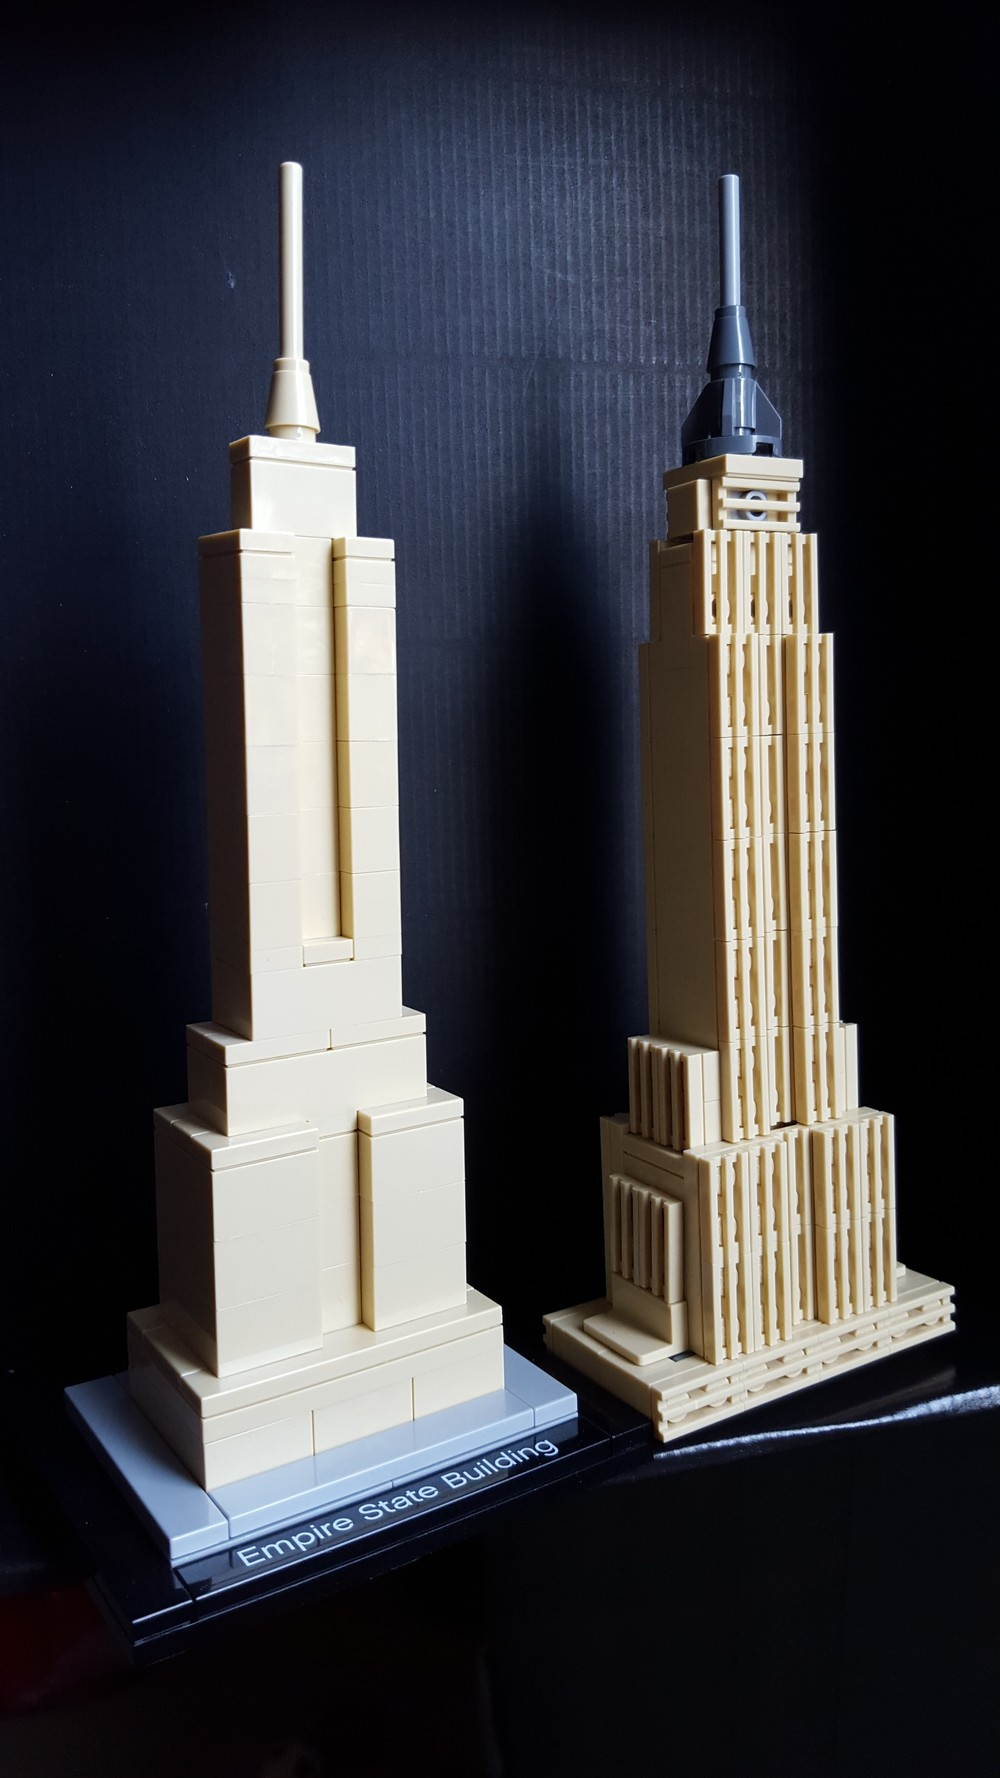 Review lego architecture new york city bricknerd for Lego architecture new york